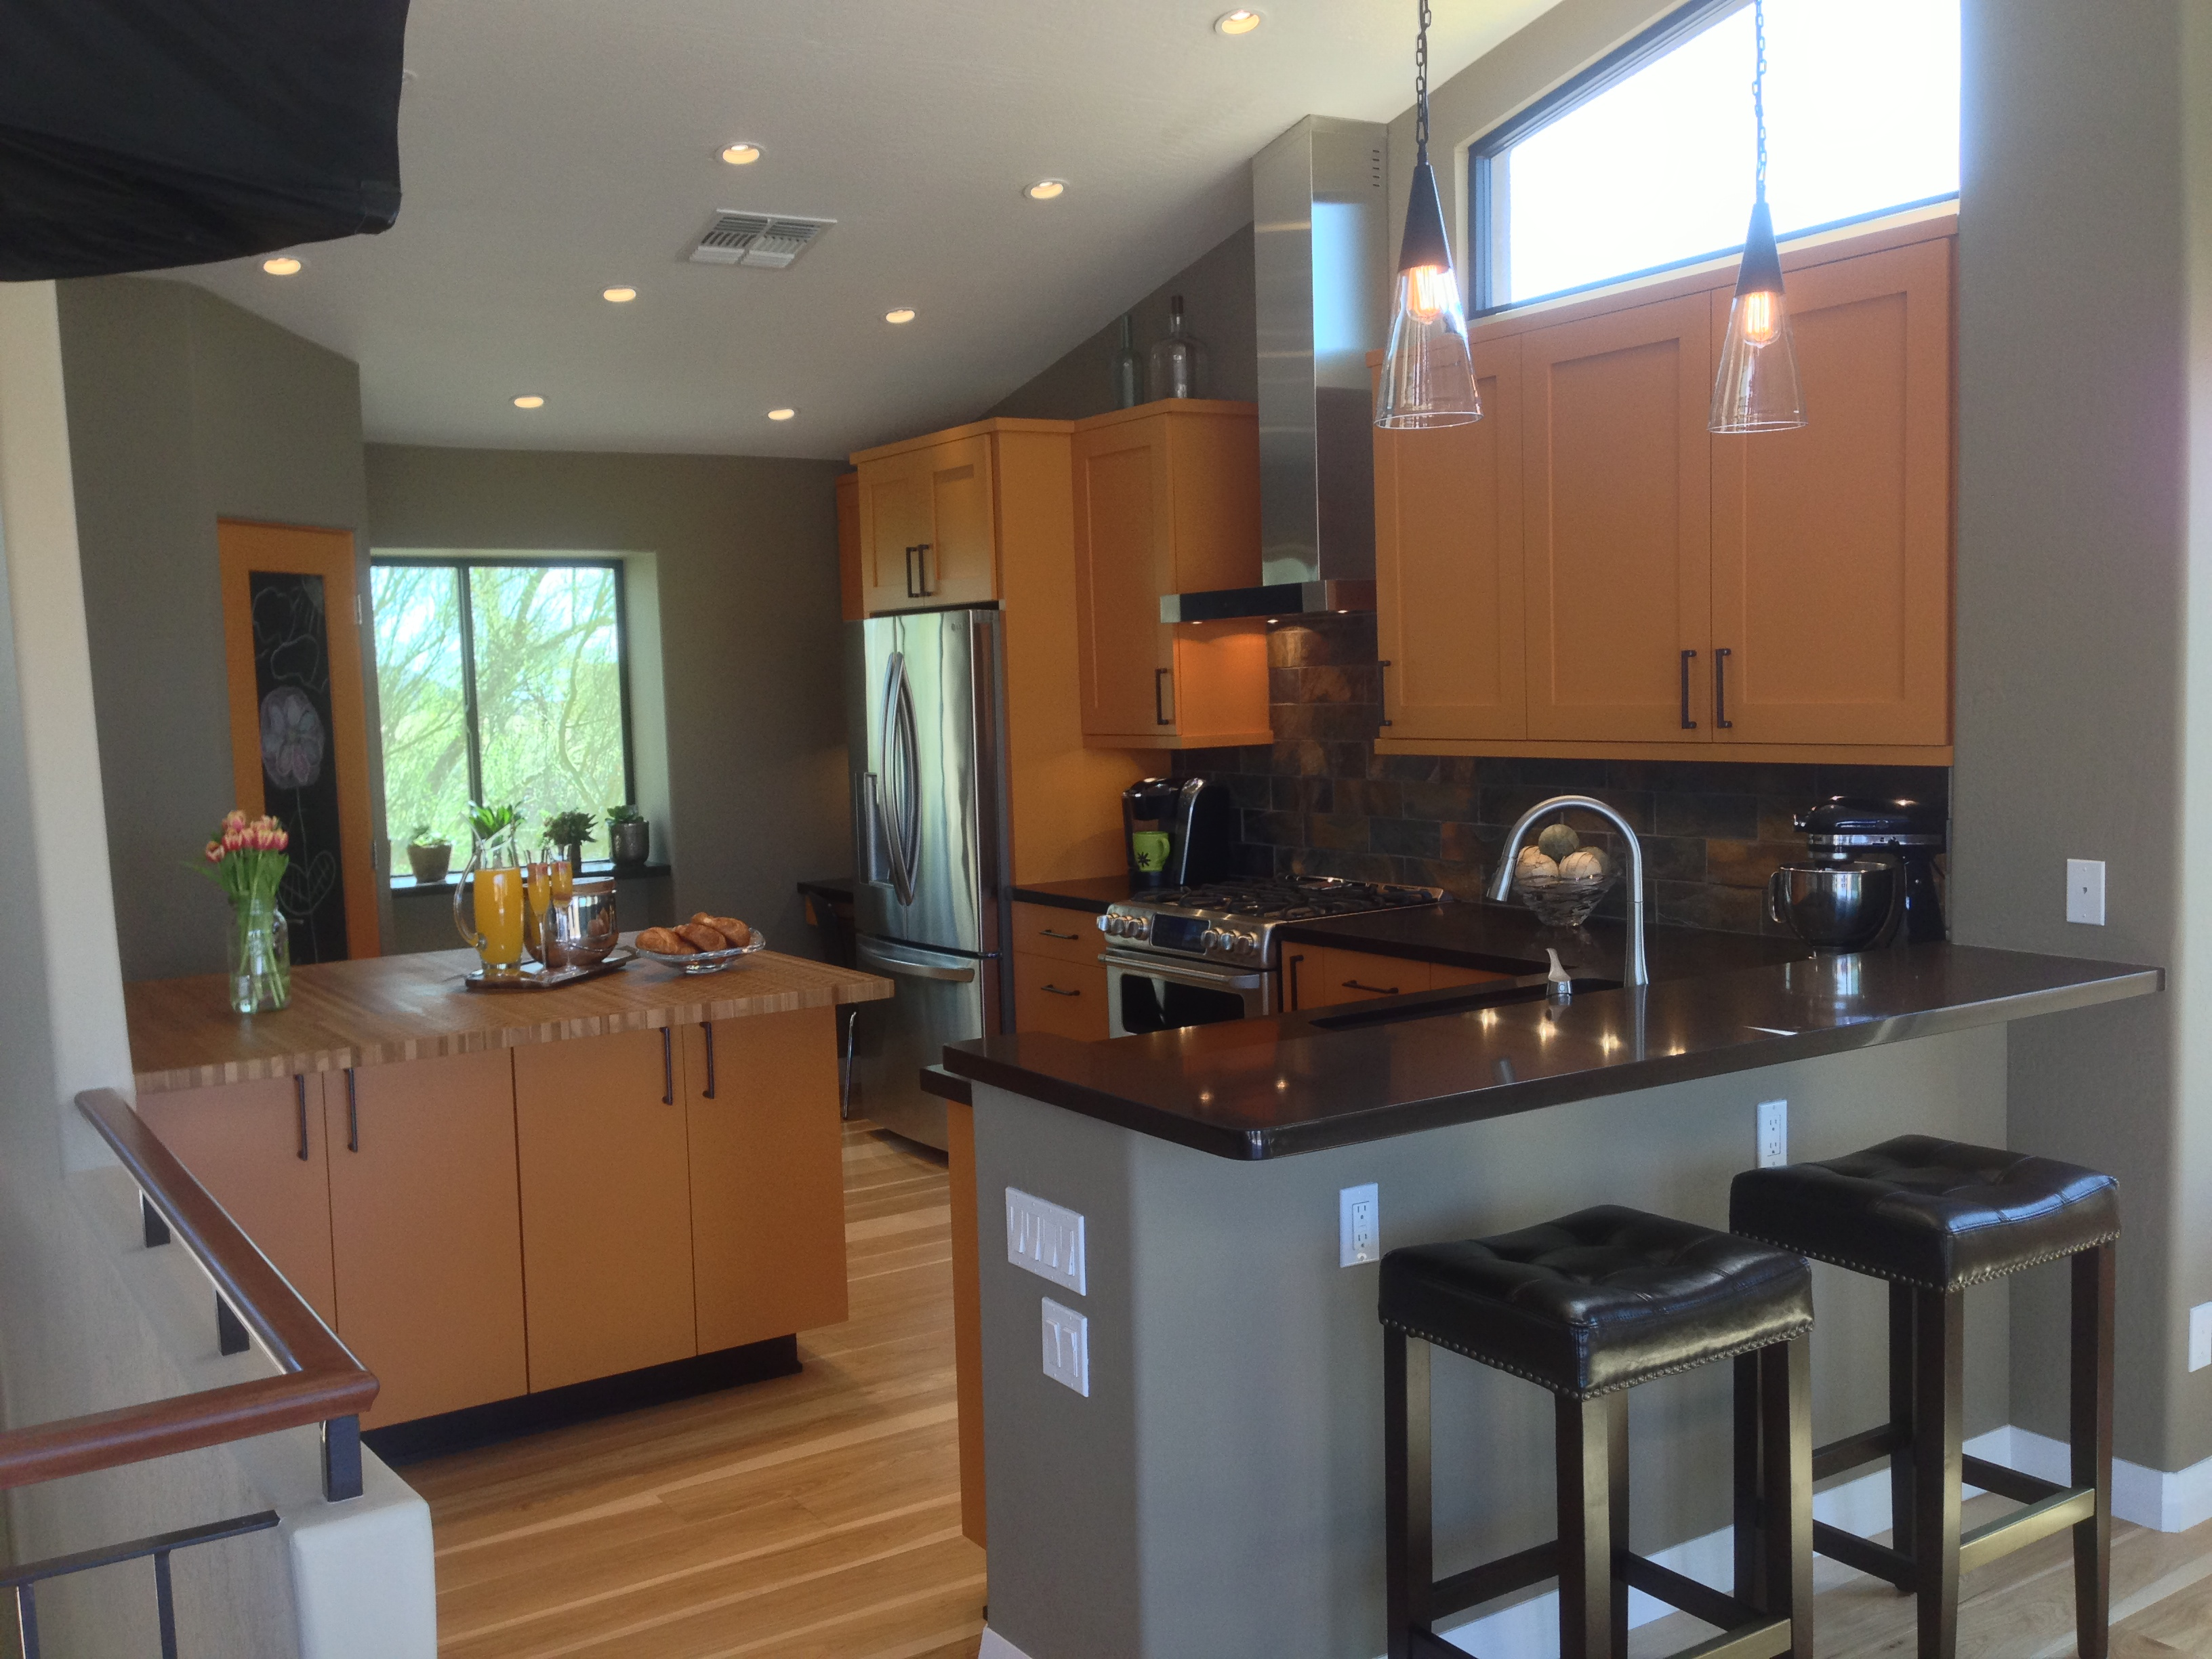 Granite Countertops for Kitchen Remodeling in Scottsdale on Kitchens With Black Granite Countertops  id=66331